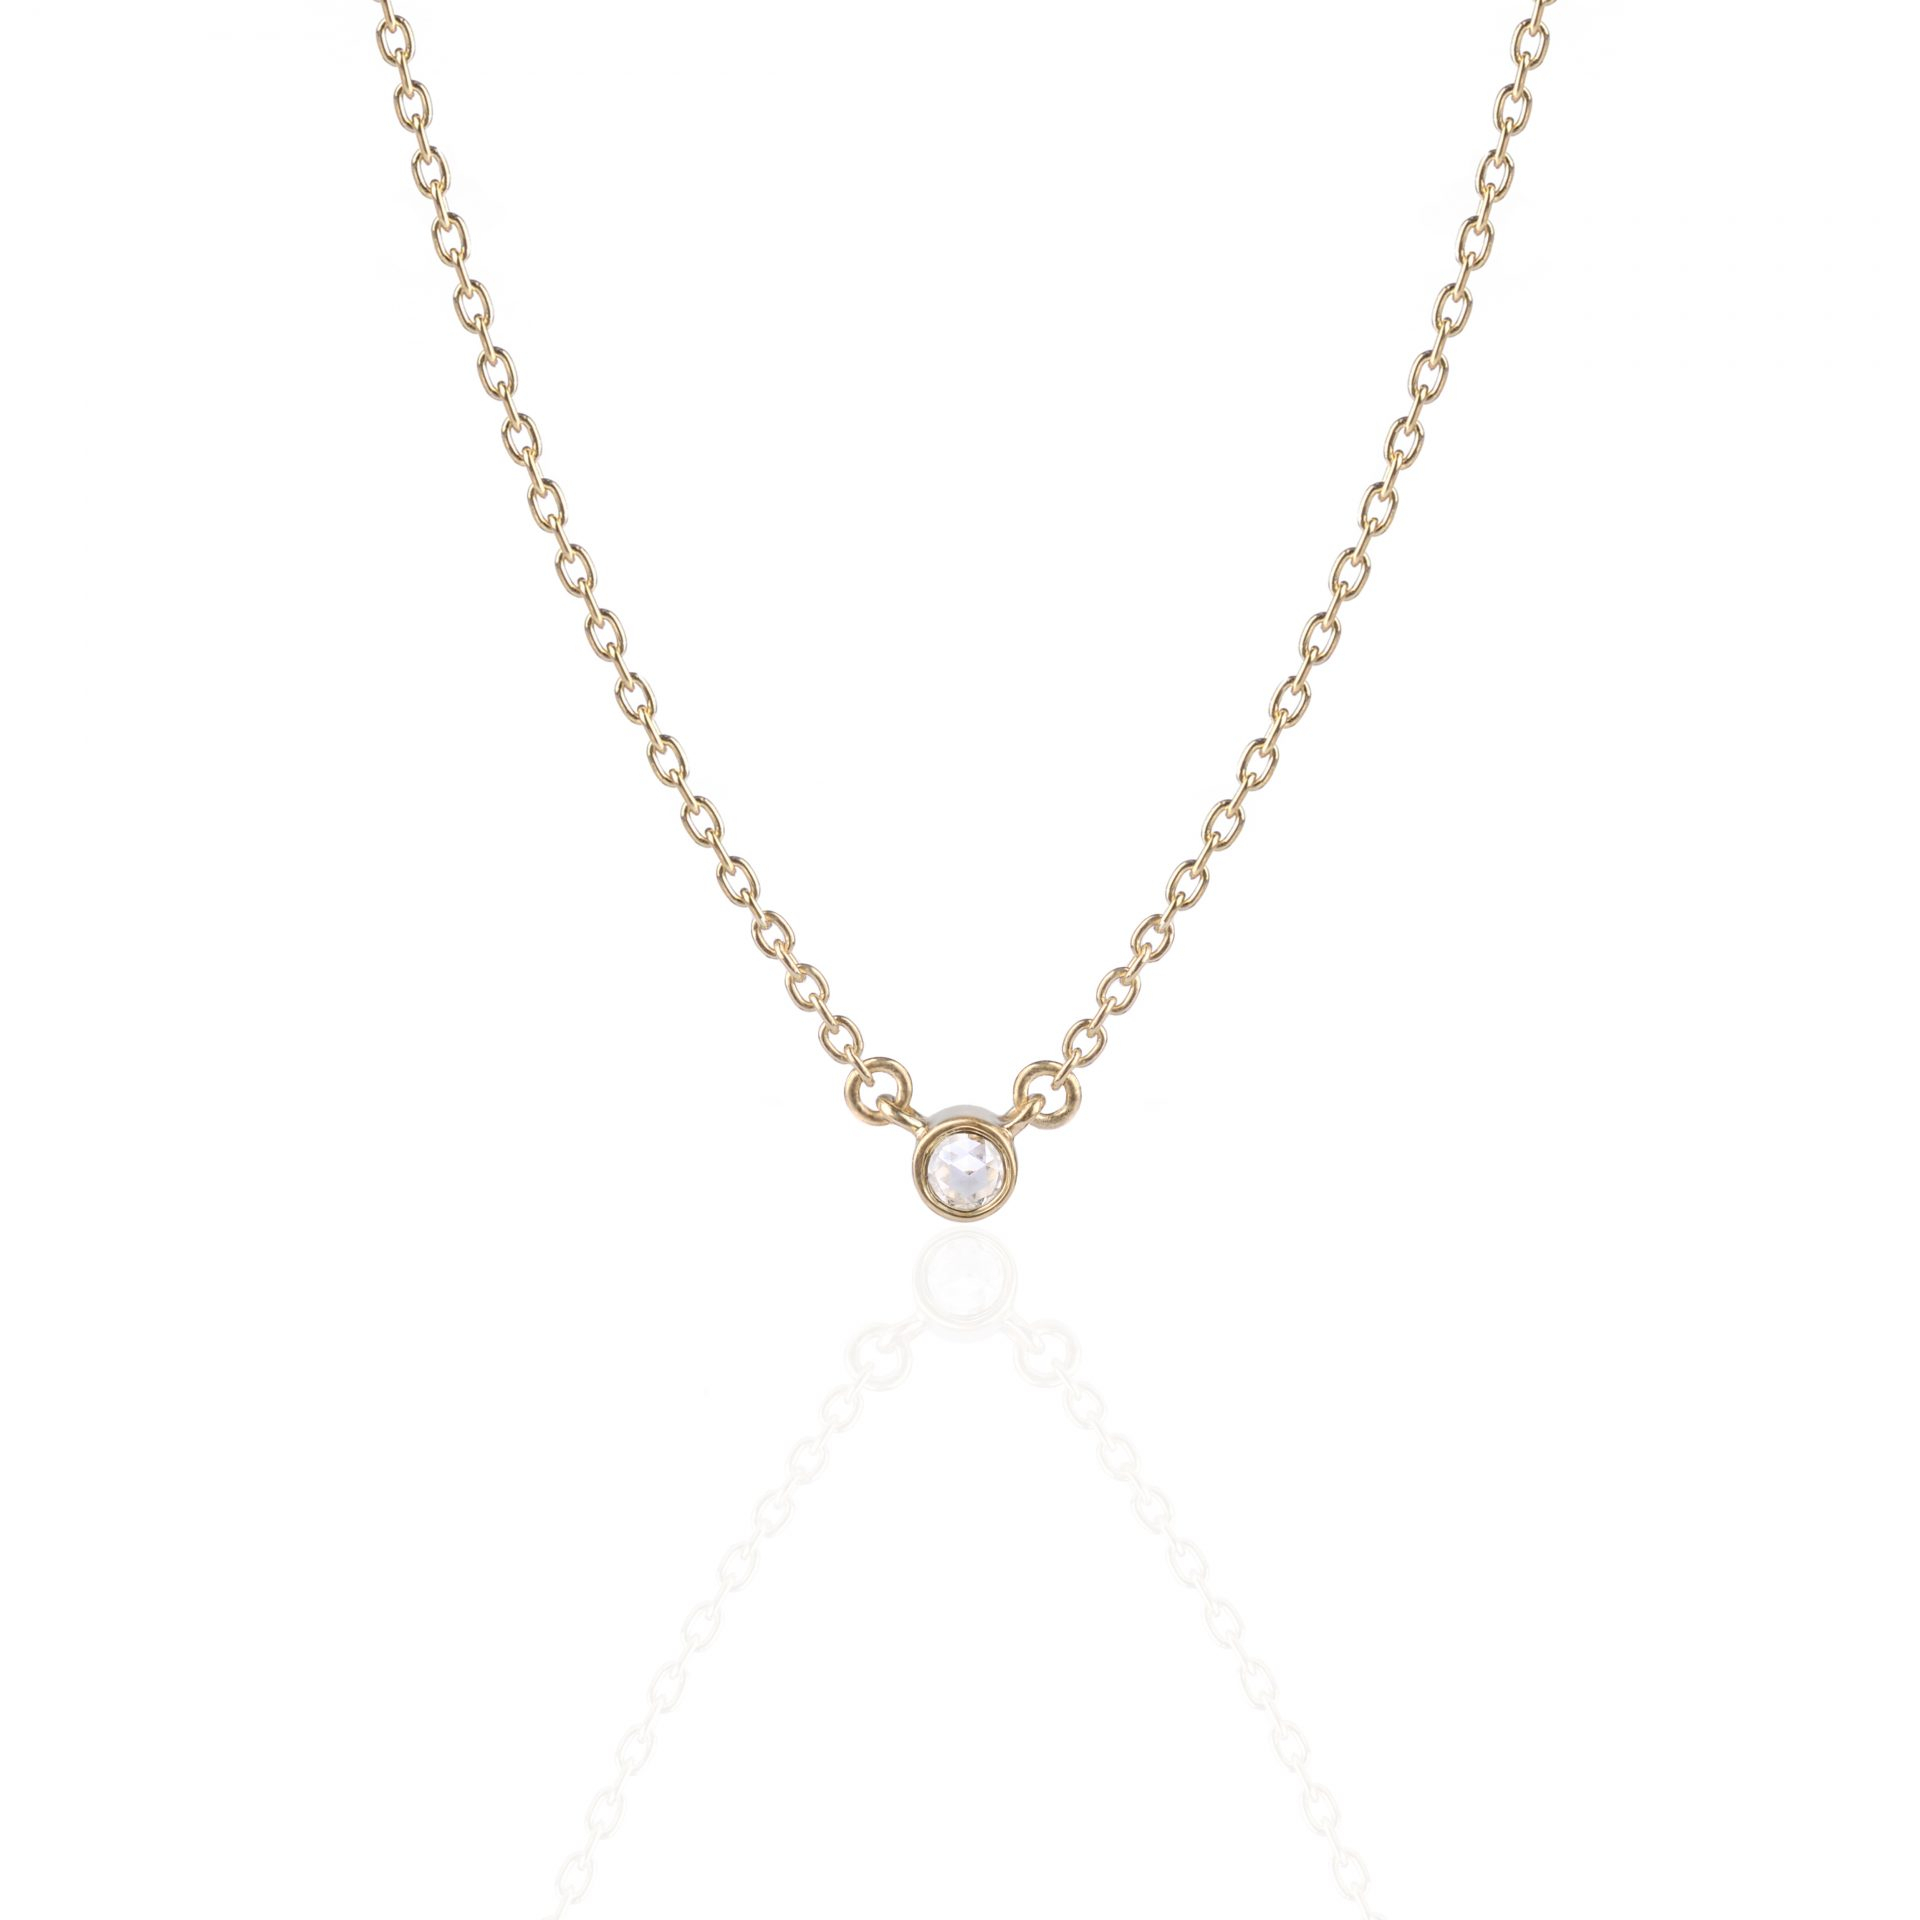 Lone Star Diamond Necklace Yellow Gold With Regard To Most Popular Diamond Necklaces In Yellow Gold (View 17 of 25)